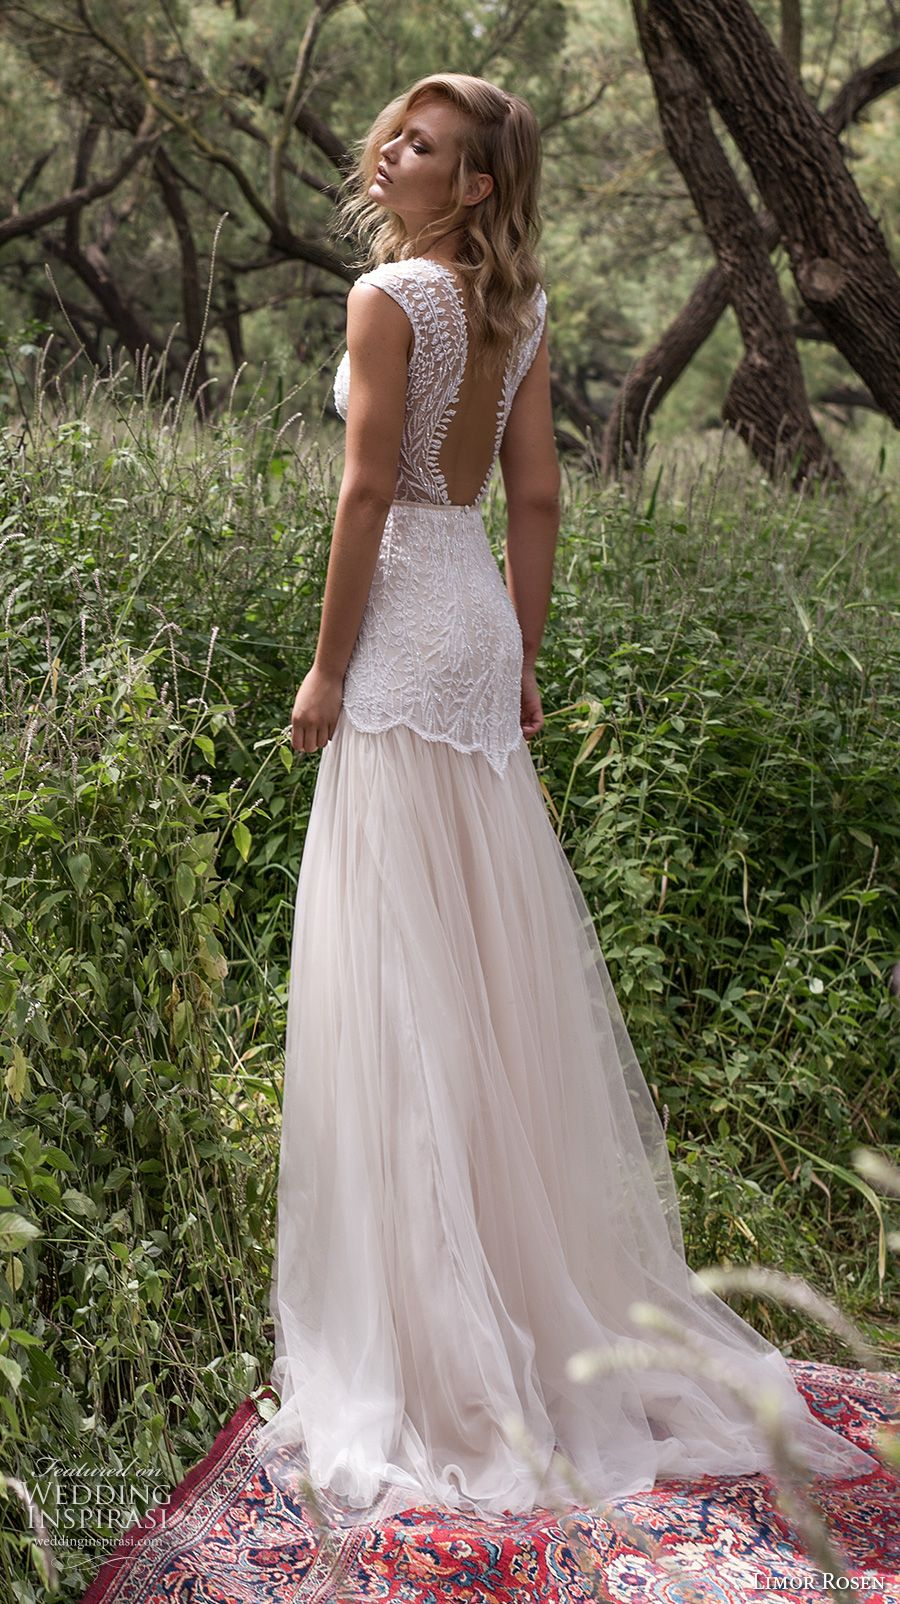 Mermaid Wedding Dress 2019 Off Shoulder Spaghetti Straps Criss-cross Backless Sexy Garden Country Bohemia Wedding Gowns Rapid Heat Dissipation Back To Search Resultsweddings & Events